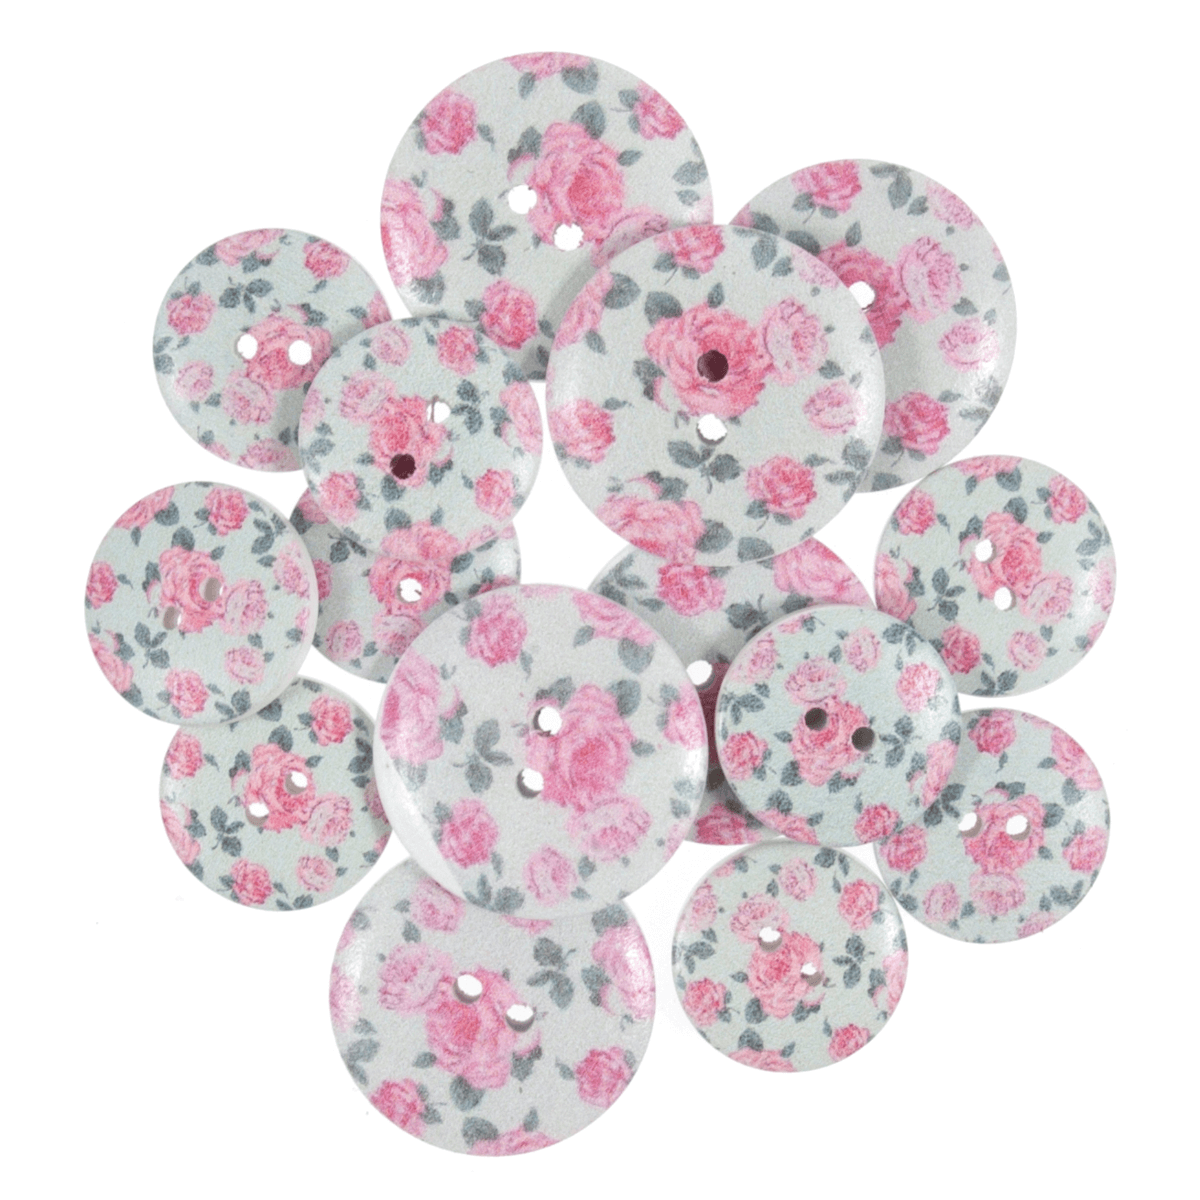 15 x Assorted Grey Vintage Rose Wooden Craft Buttons 18mm - 25mm